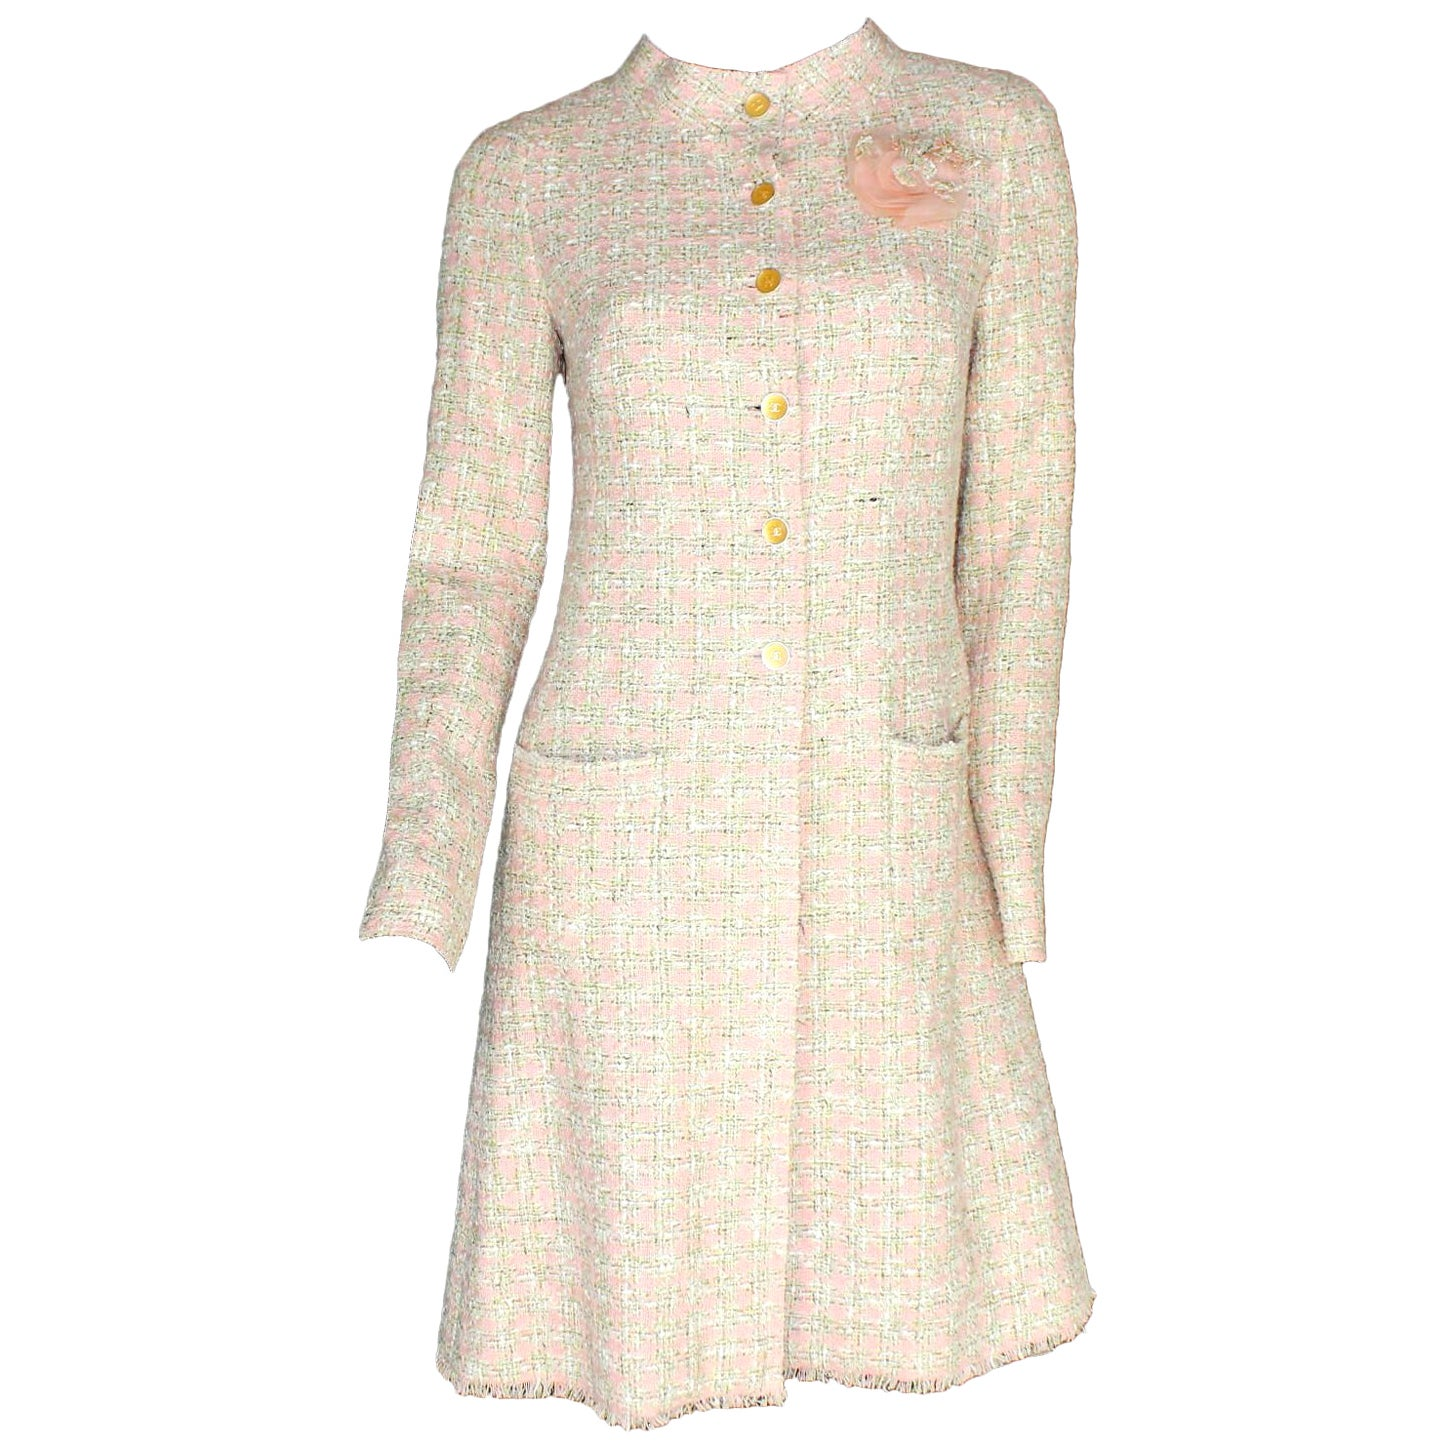 Timeless CHANEL Fringed Fantasy Lesage Tweed Coat with Camellia Brooch